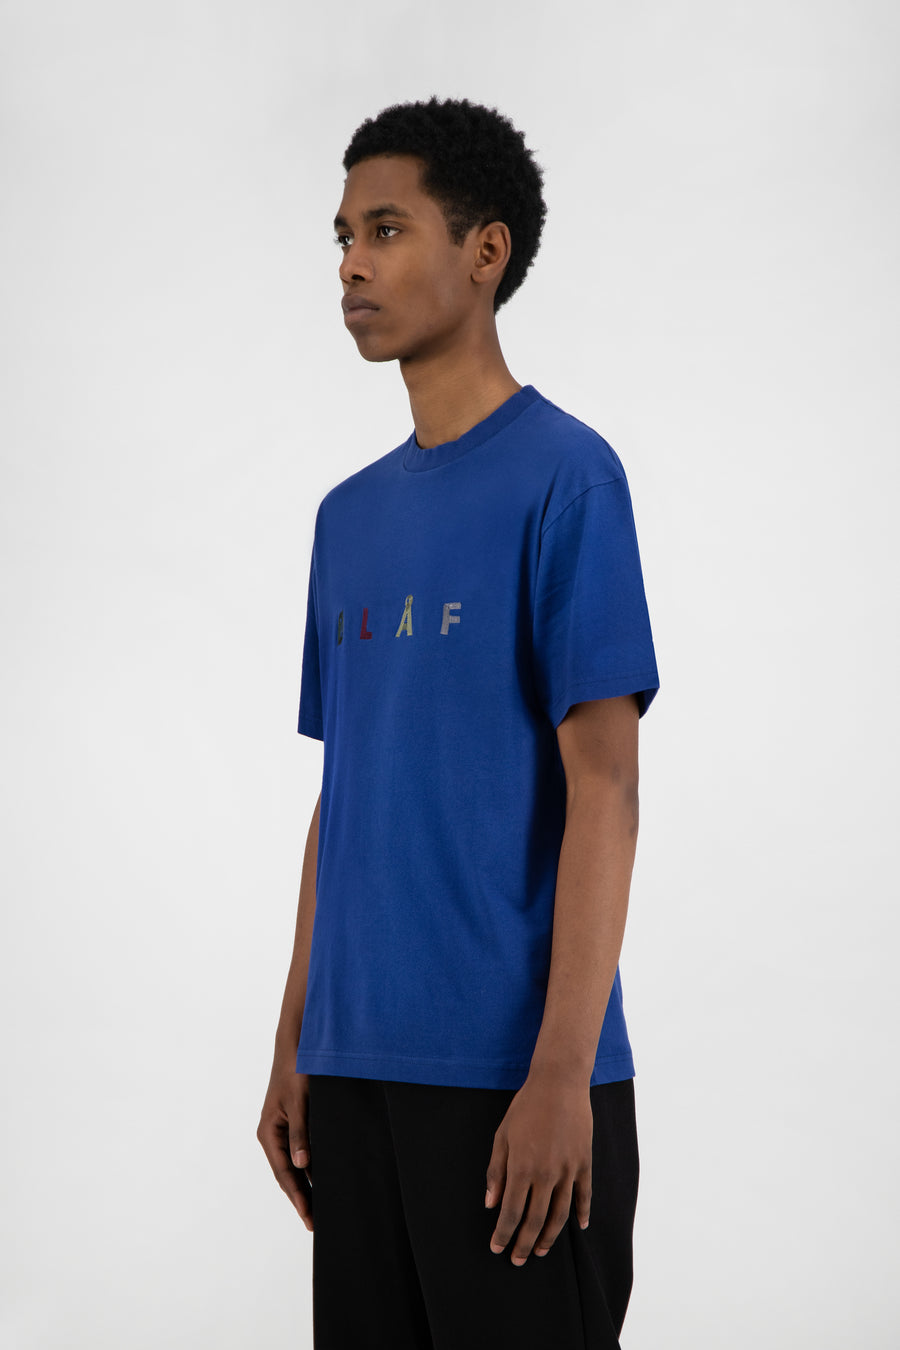 ØLÅF Chainstitch Tee <br>Royal Blue